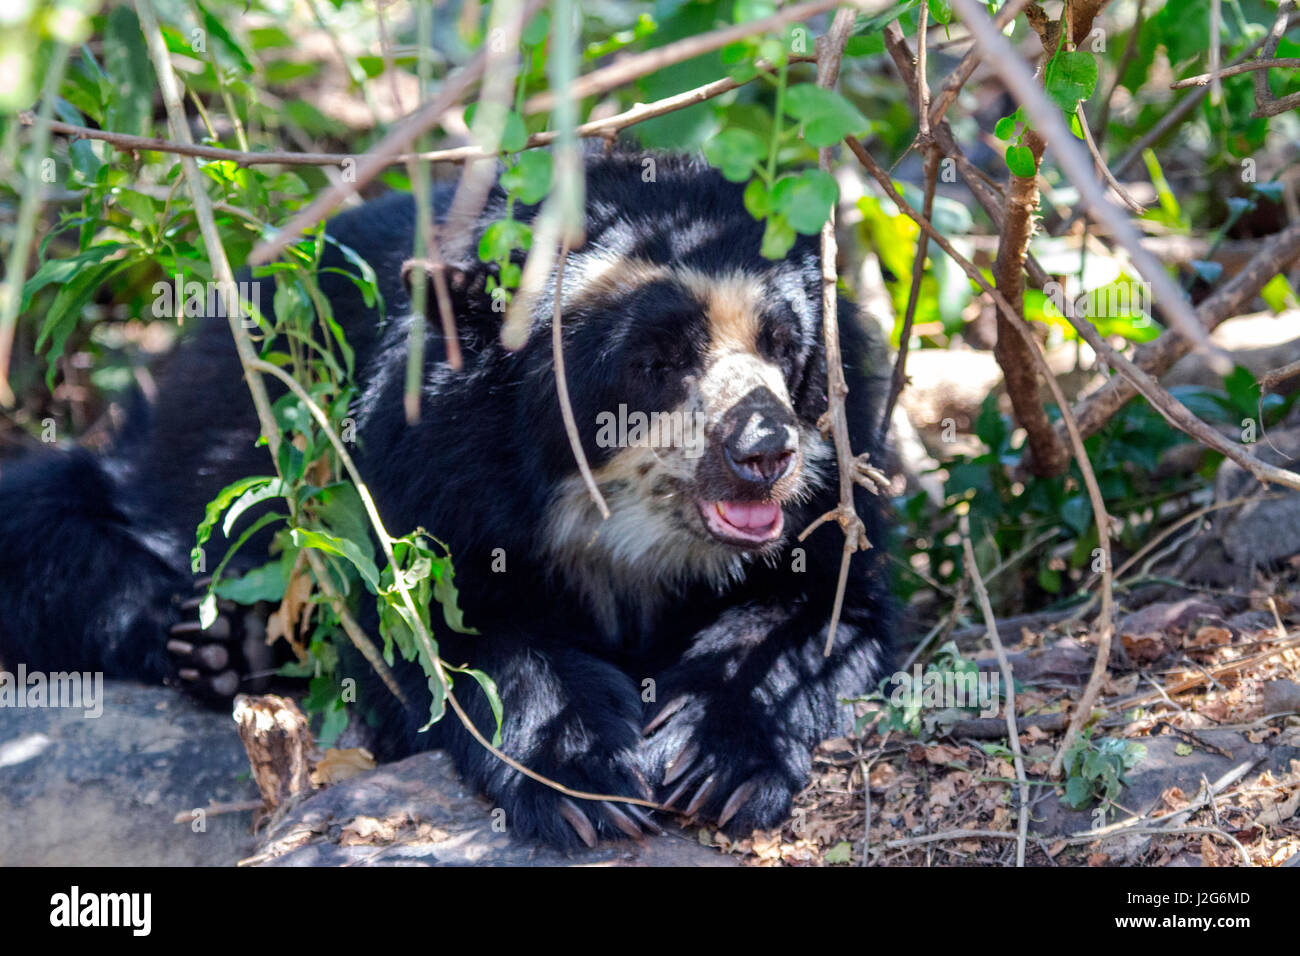 The black spectacled bear is the only species of bear found in South America. Stock Photo